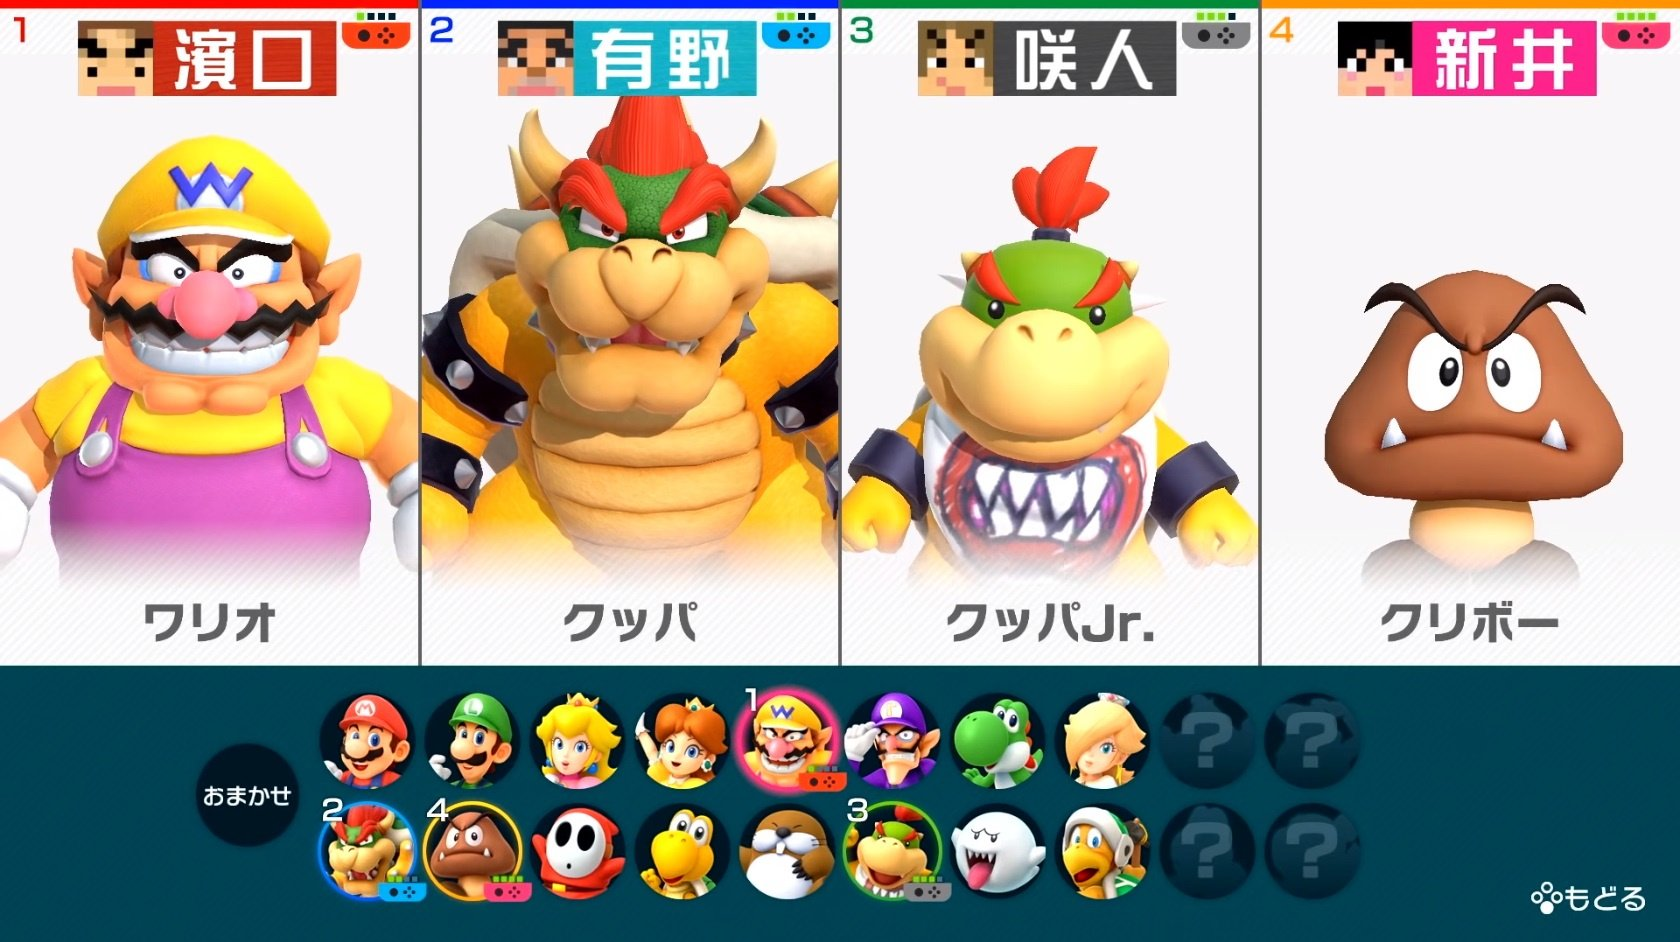 Has Nintendo Accidentally Revealed The Entire Cast Of Super Mario